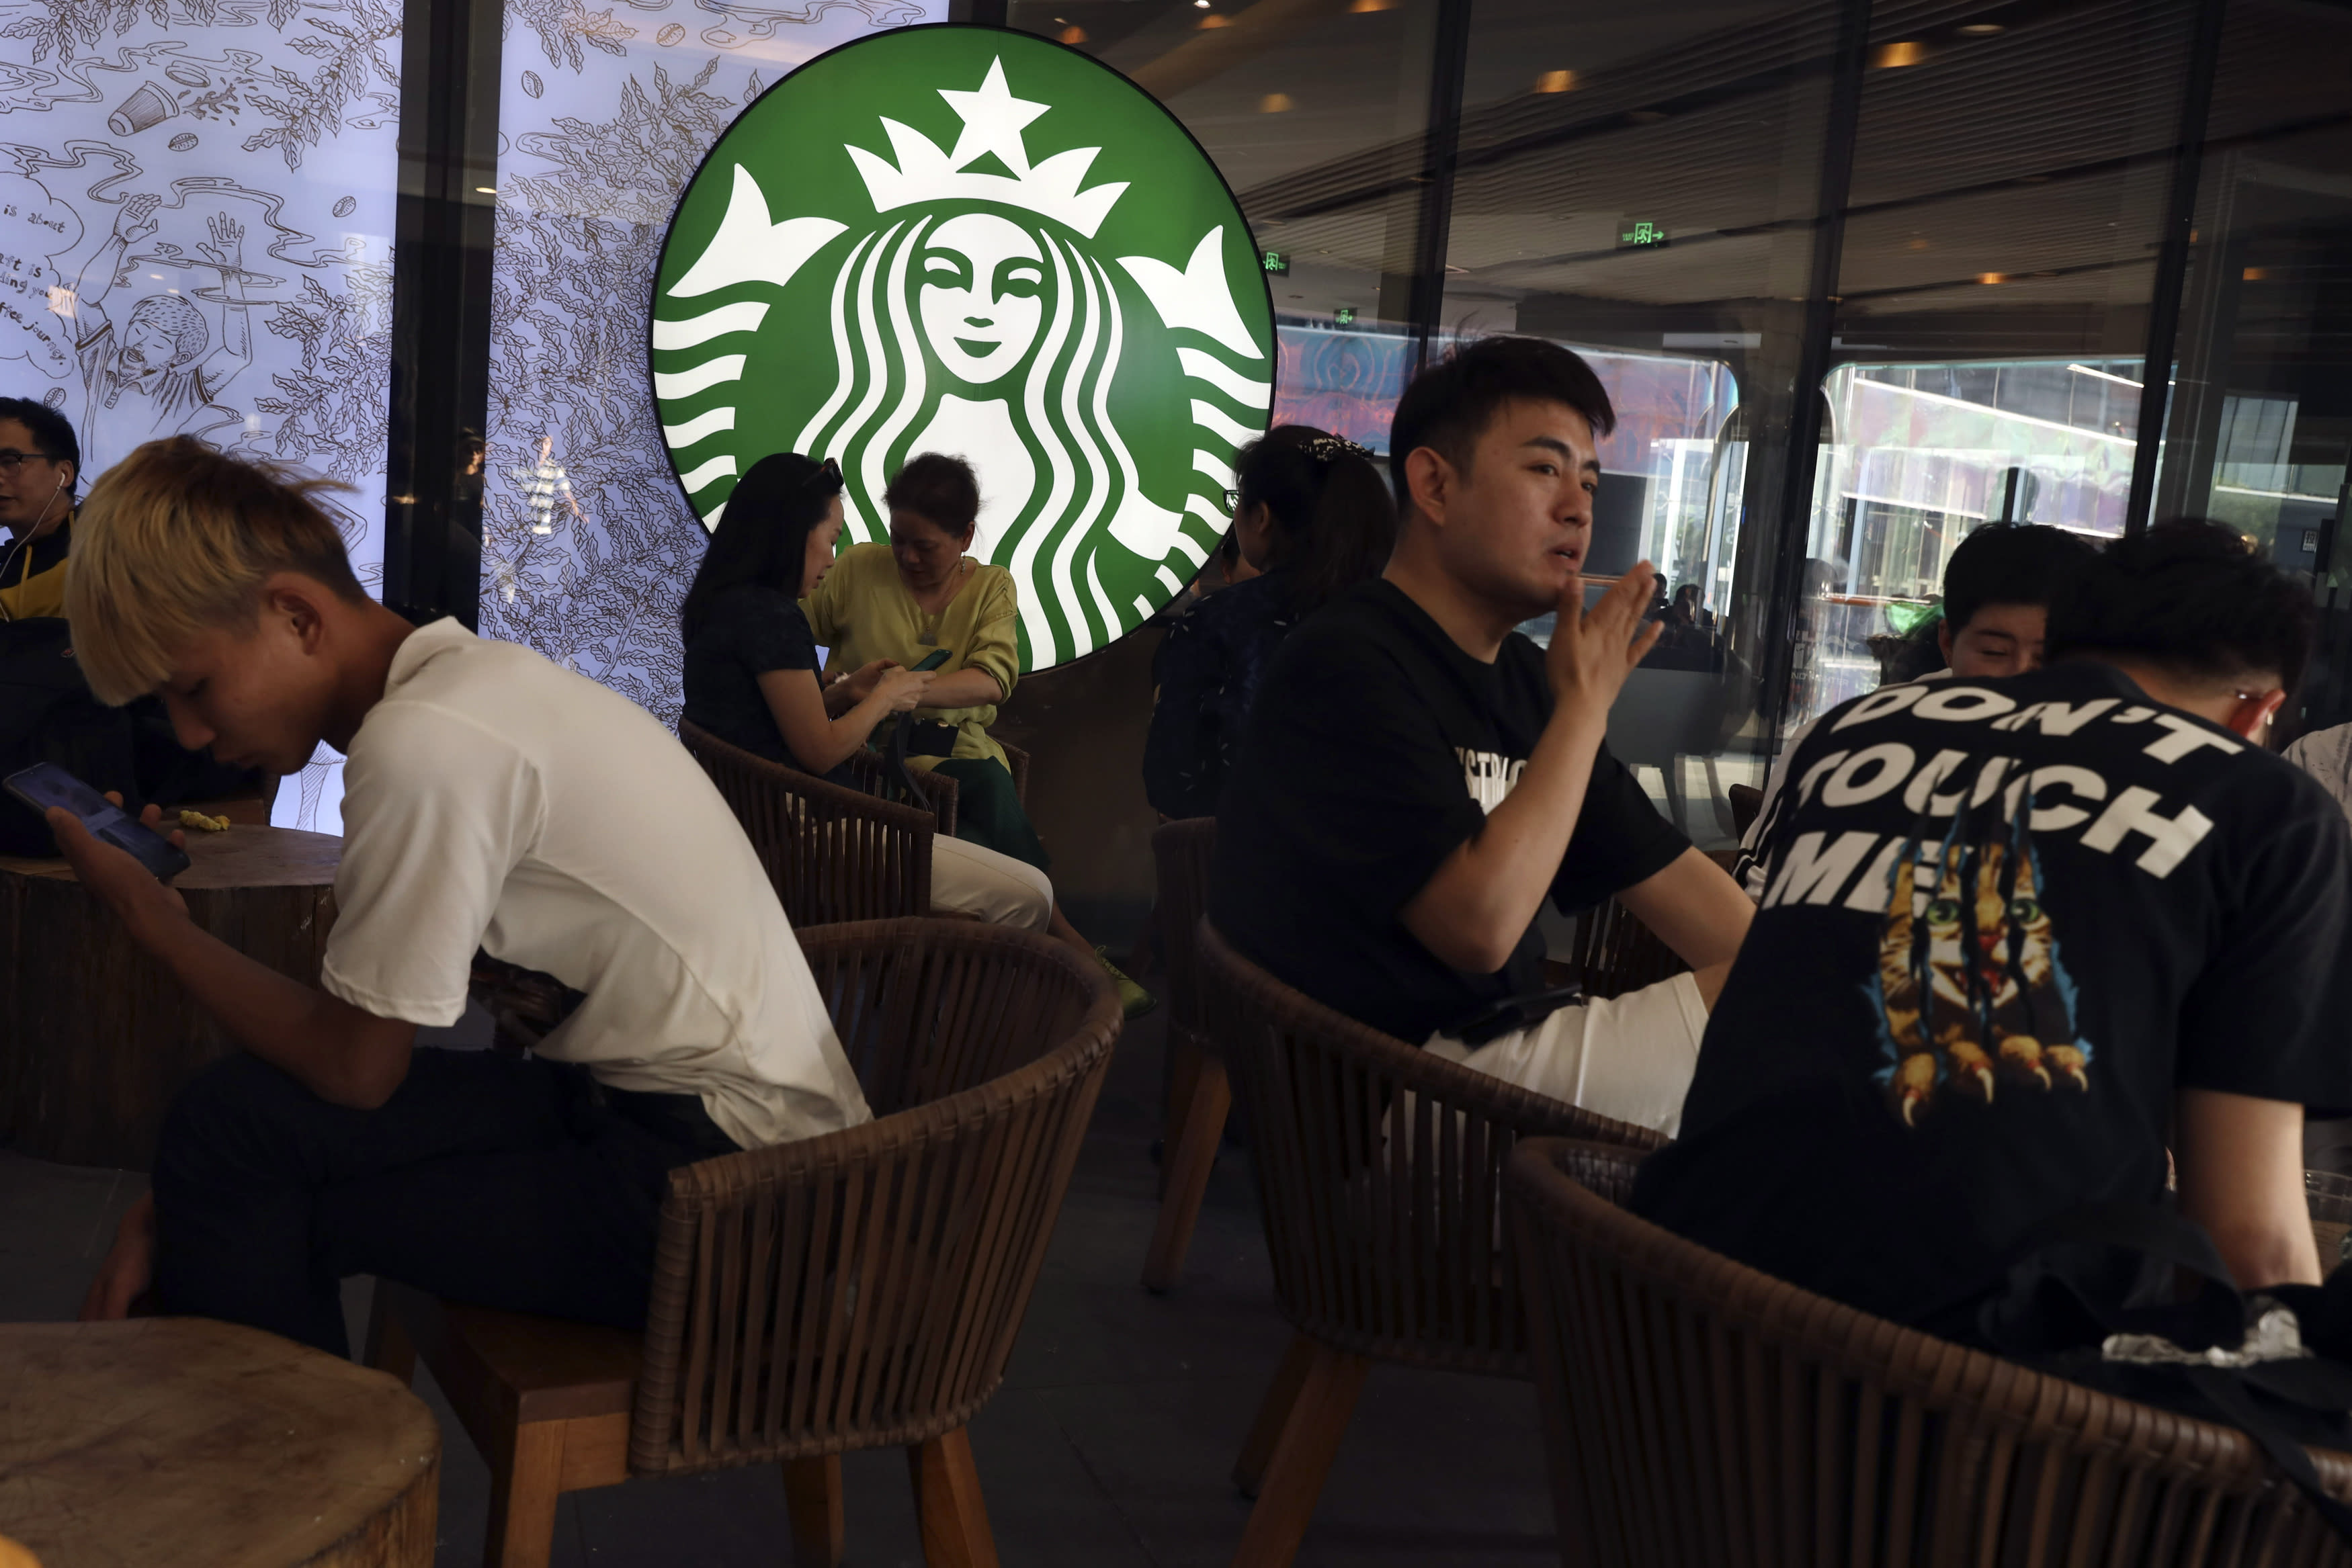 Why Budweiser, Starbucks need to worry about China